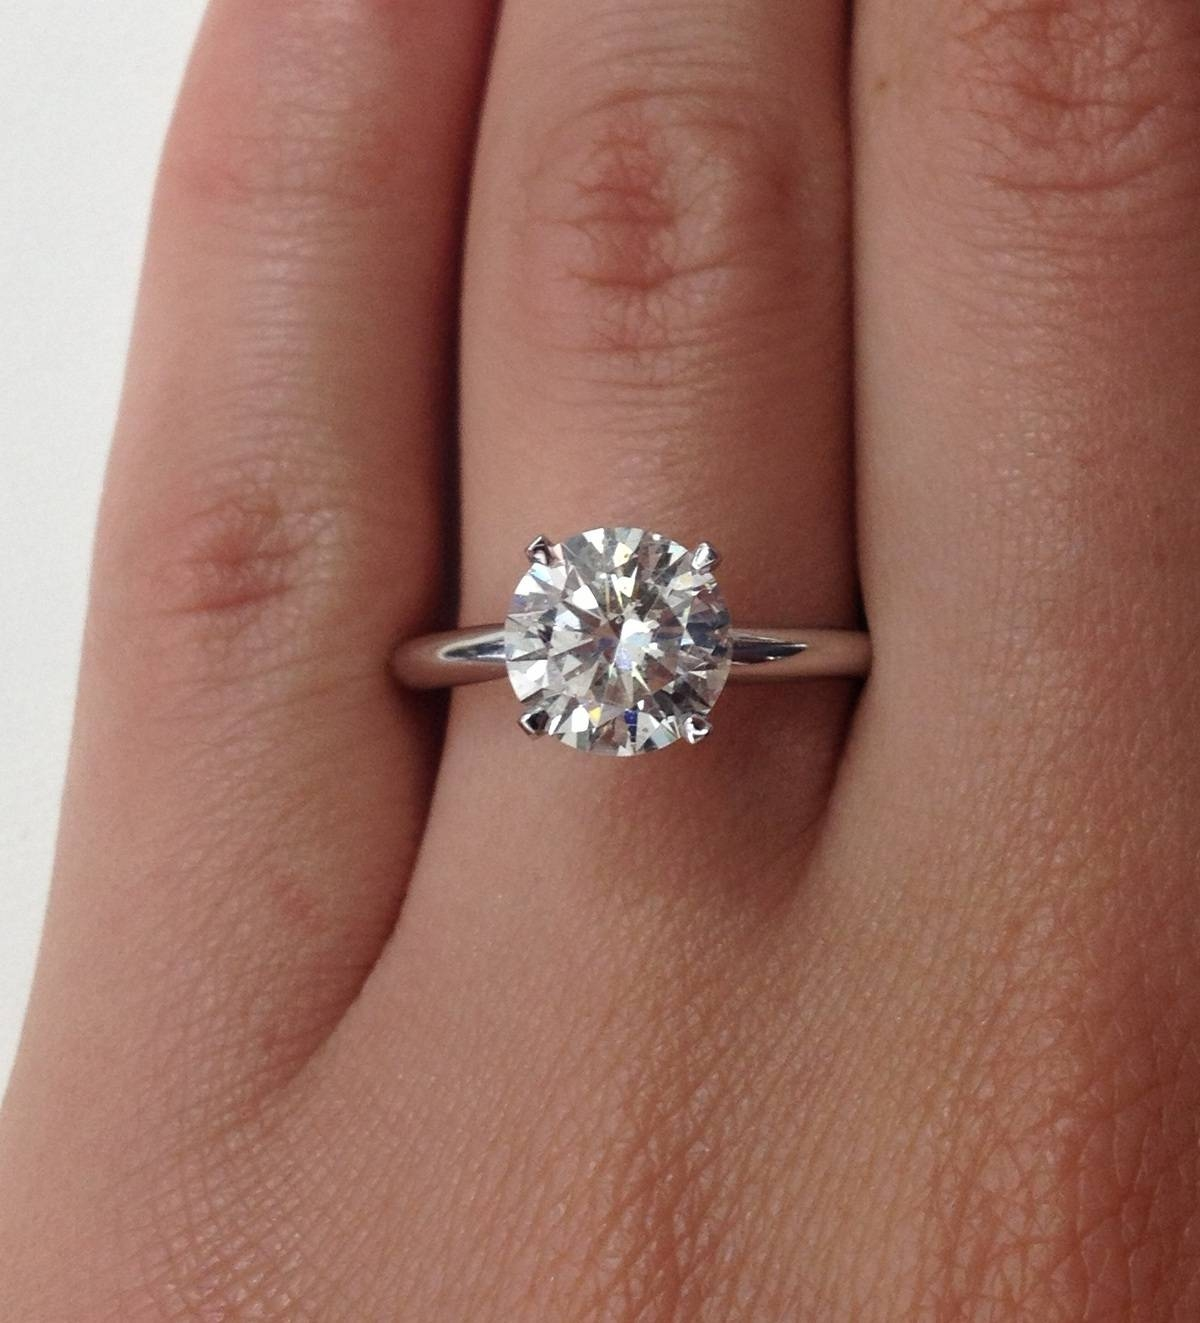 15 Best of 2 Carat Solitaire Engagement Rings